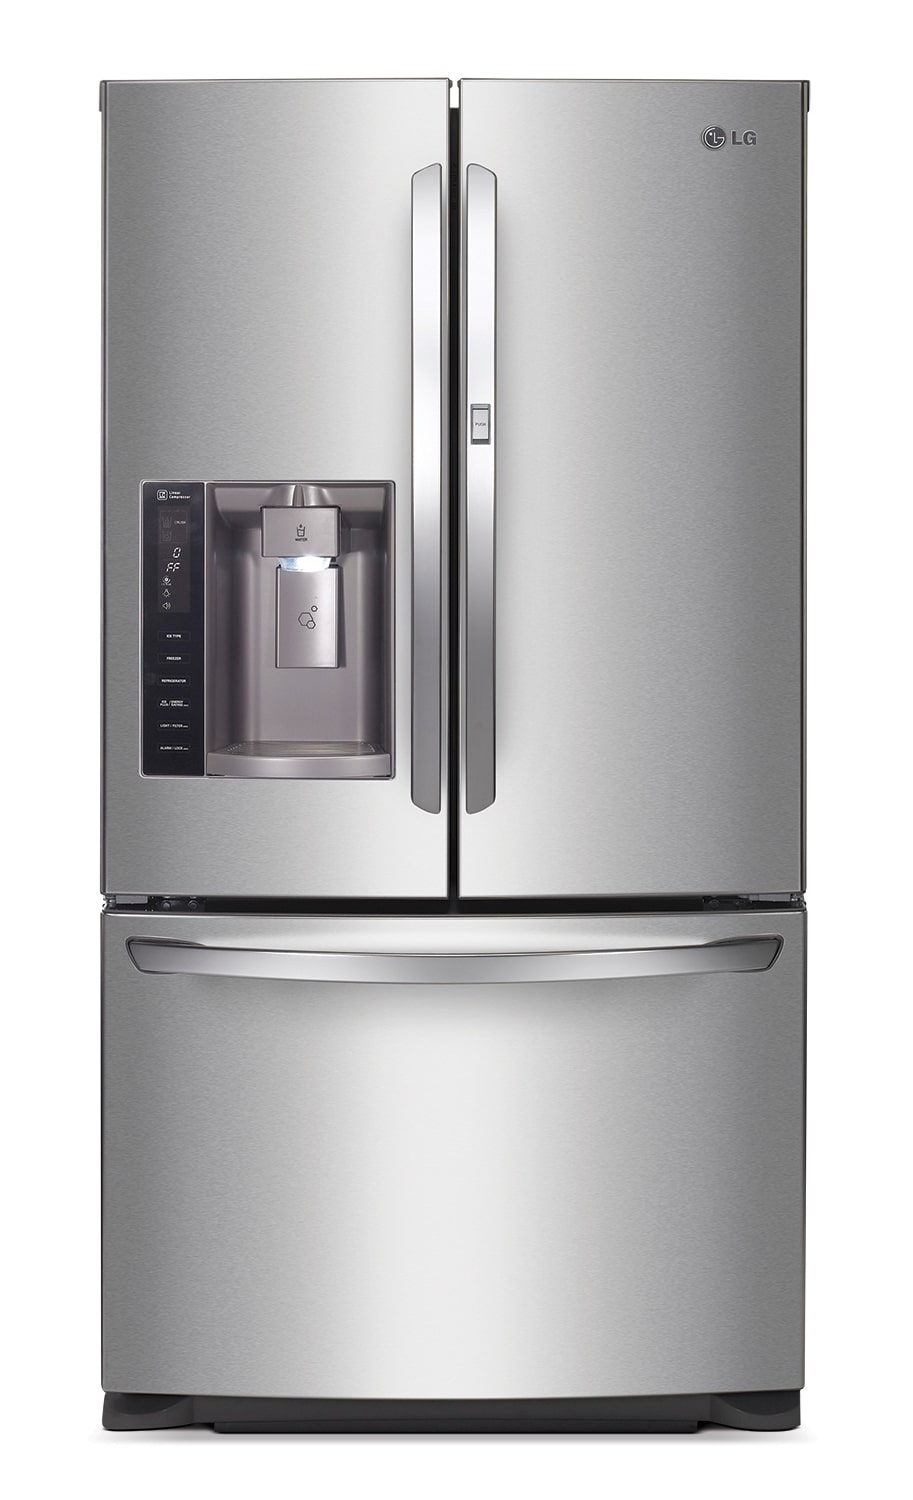 Refrigerators and Freezers - LG Appliances Stainless Steel French Door Refrigerator (26.6 Cu. Ft.) - LFXS27566S